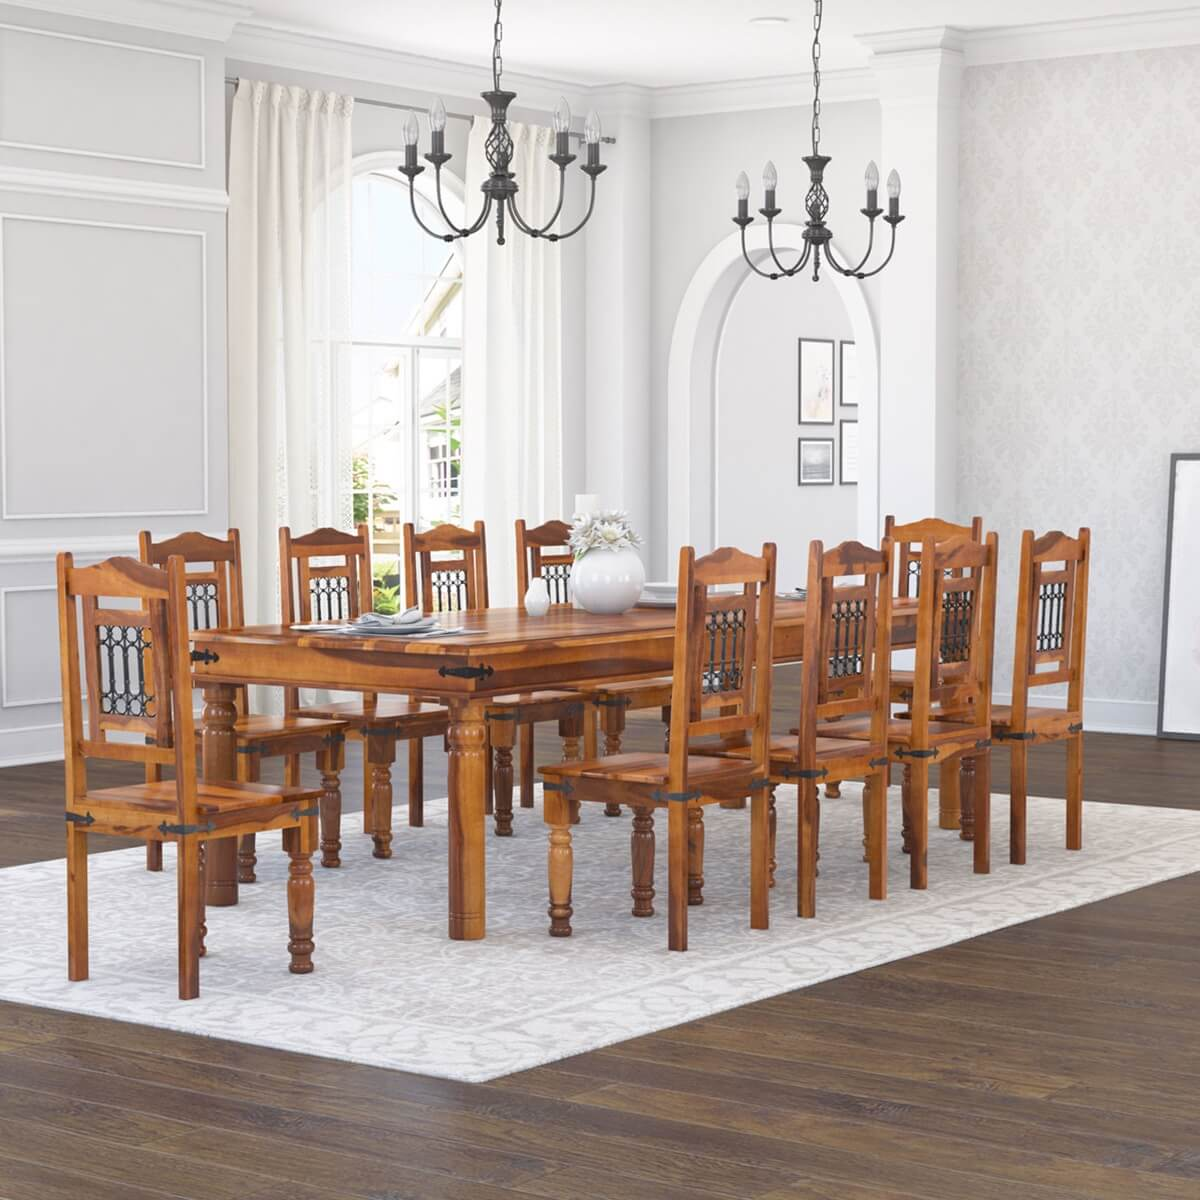 San francisco rustic furniture large dining room table for Large dining room table